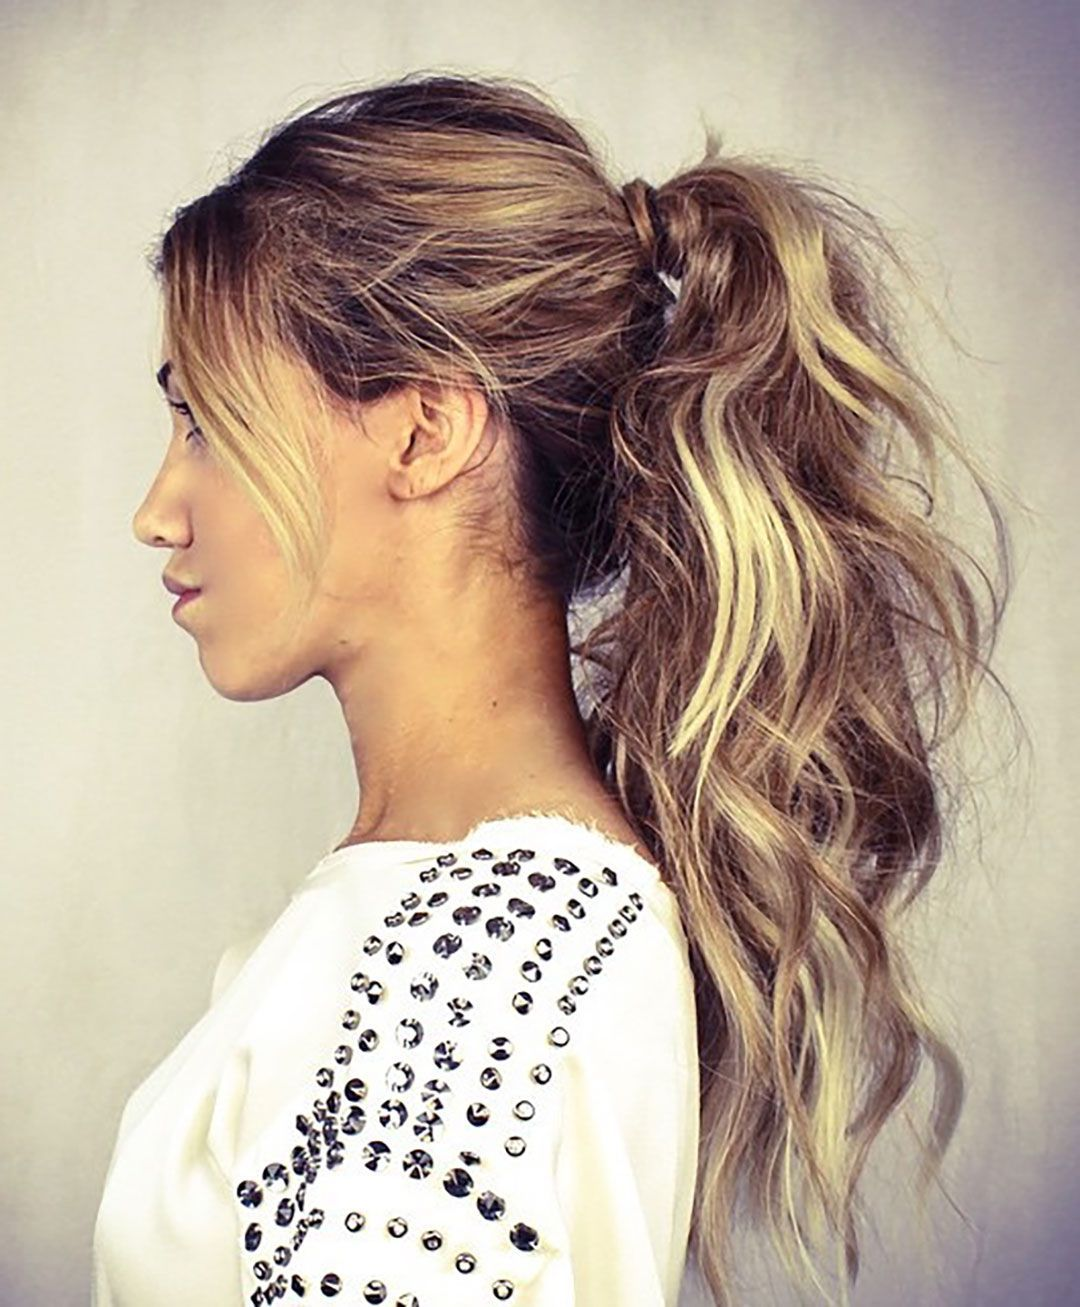 Diy Ponytail Ideas You Re Totally Going To Want To Instagram